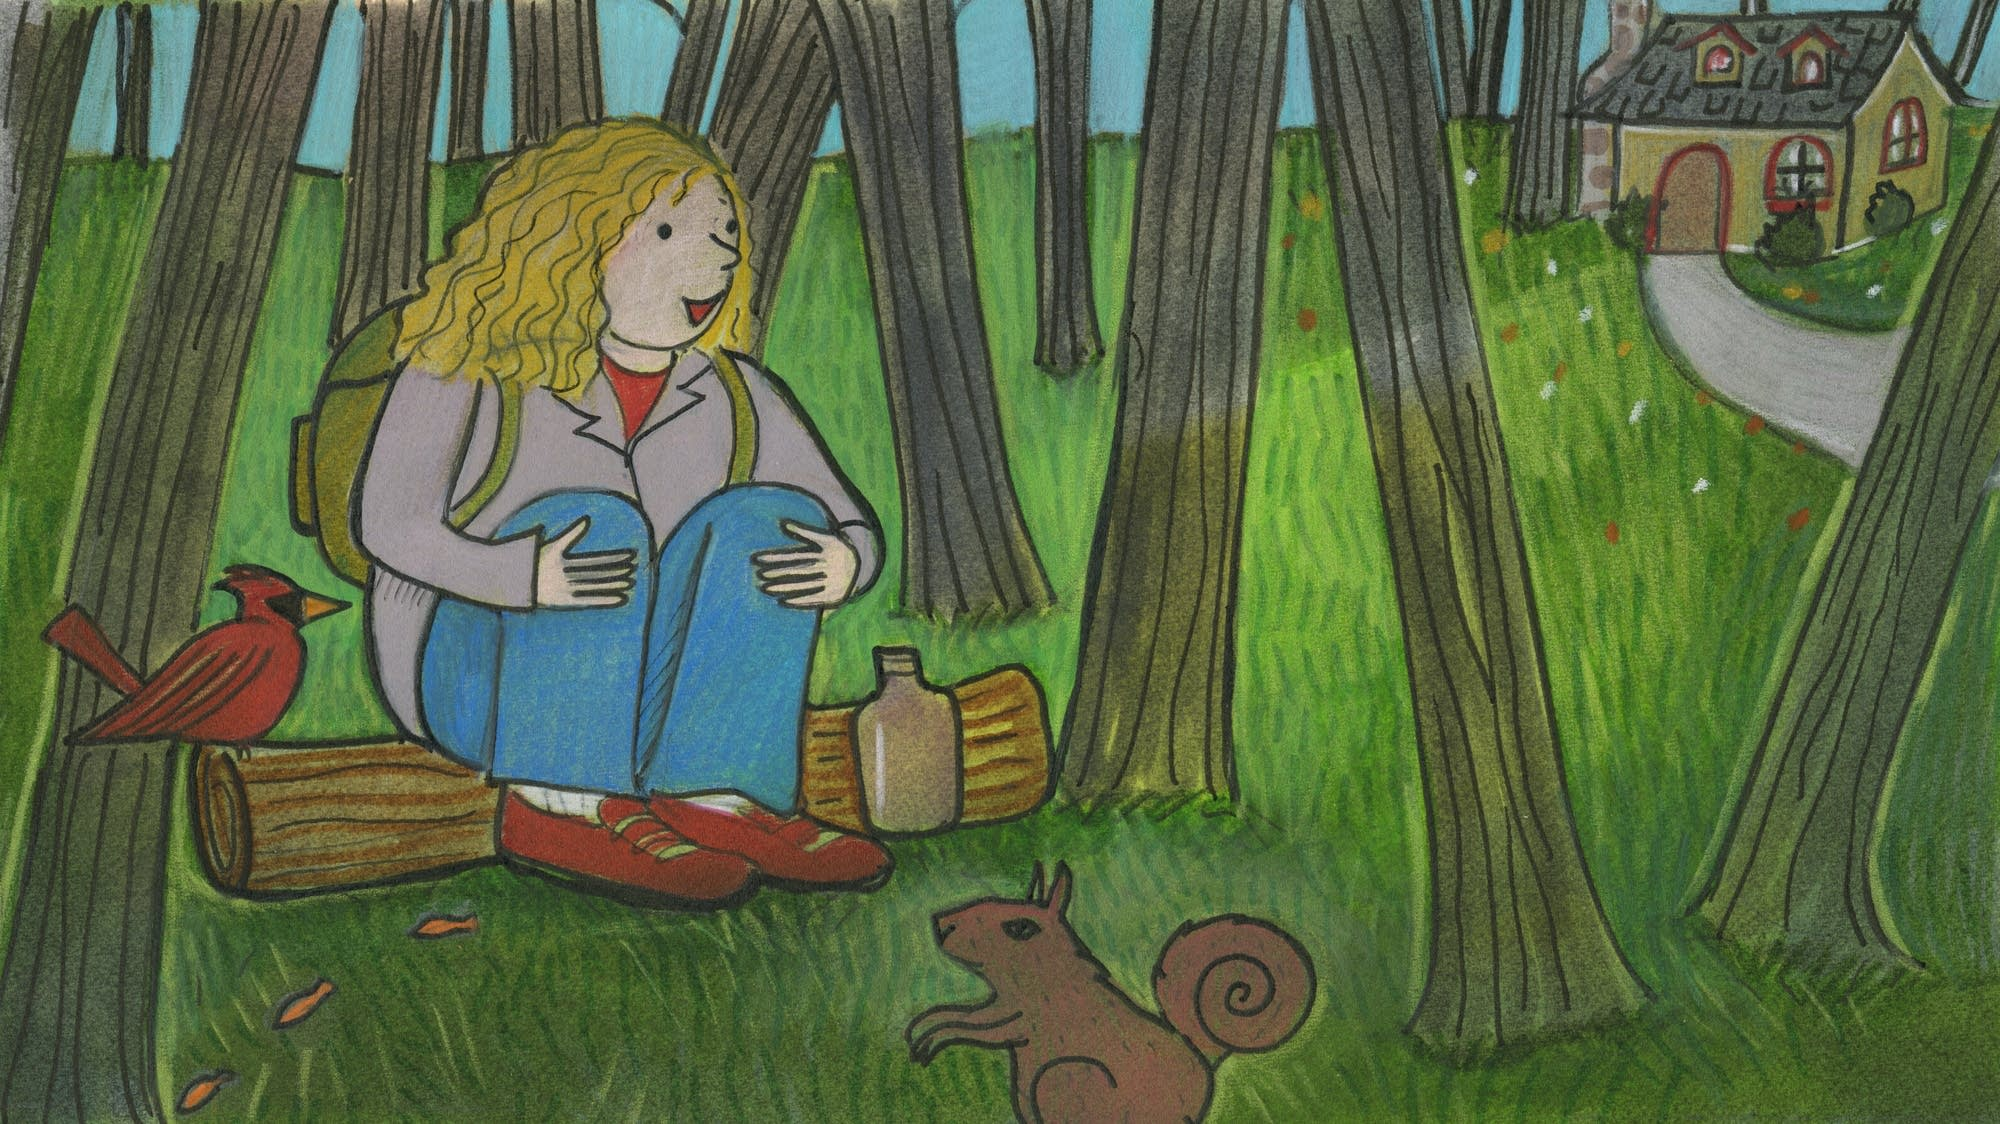 Goldilocks and the Three Bears: Goldilocks sat down.